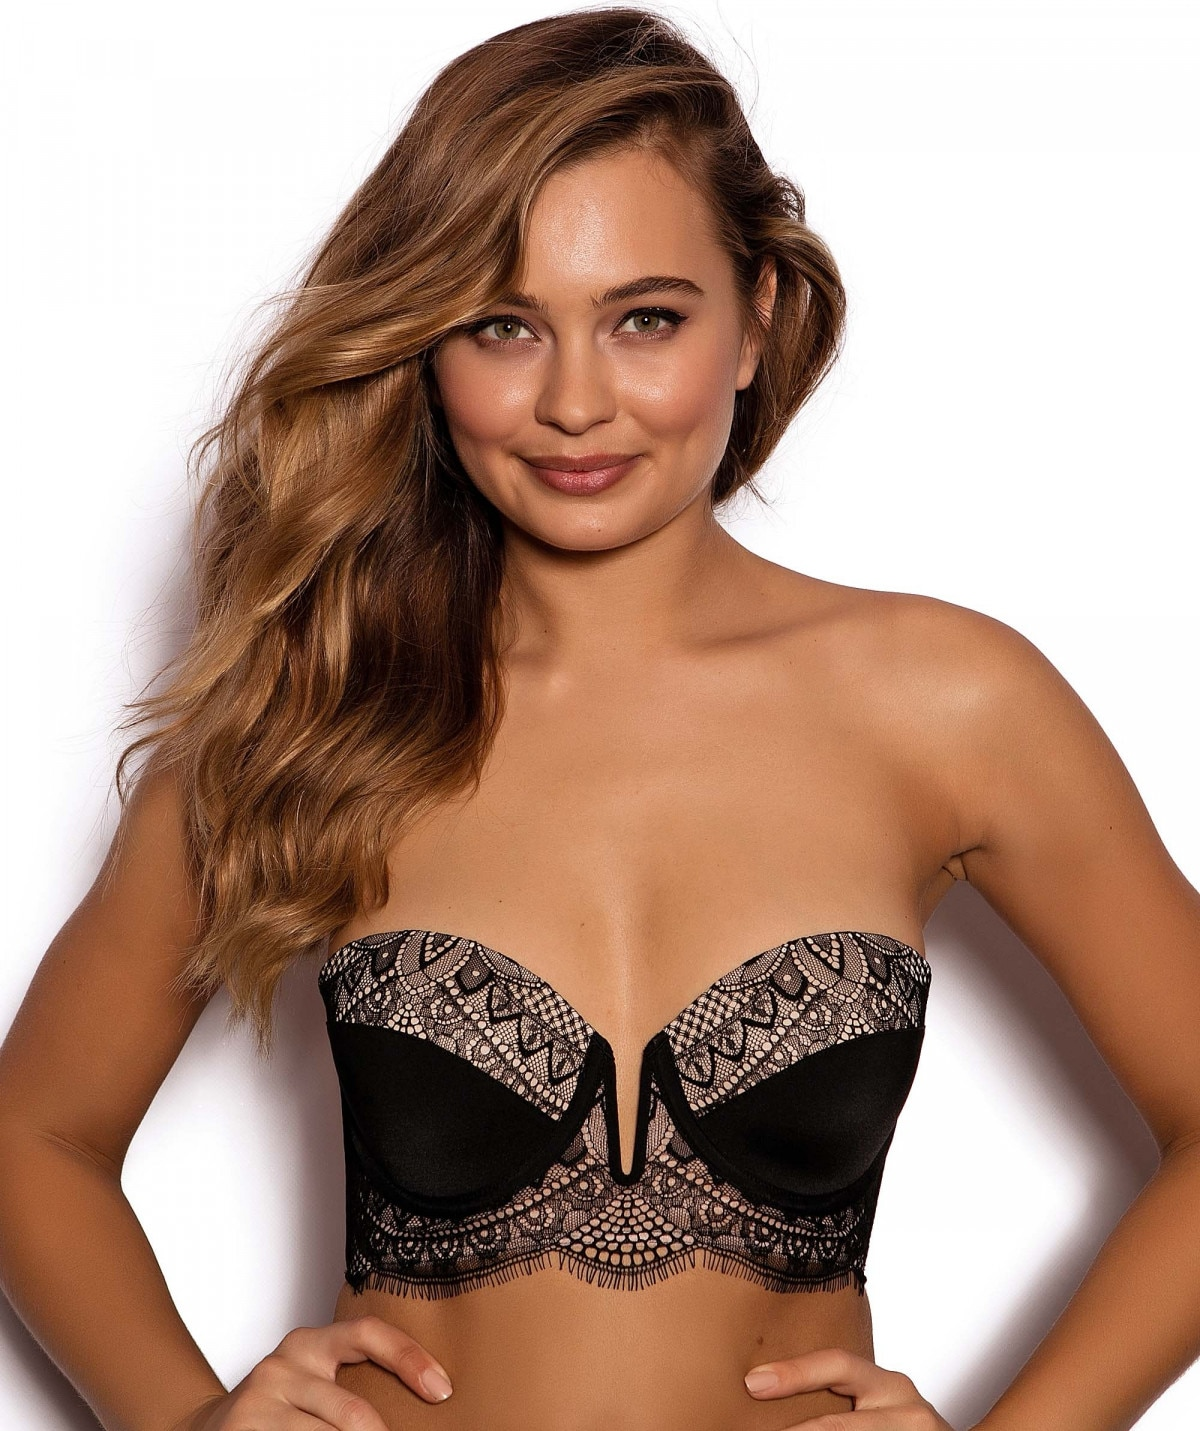 0dfc622336 Molly Contour Strapless Bra - Black Nude. Regular Price   69.99. Special  Price  15.00. Regular Price   69.99